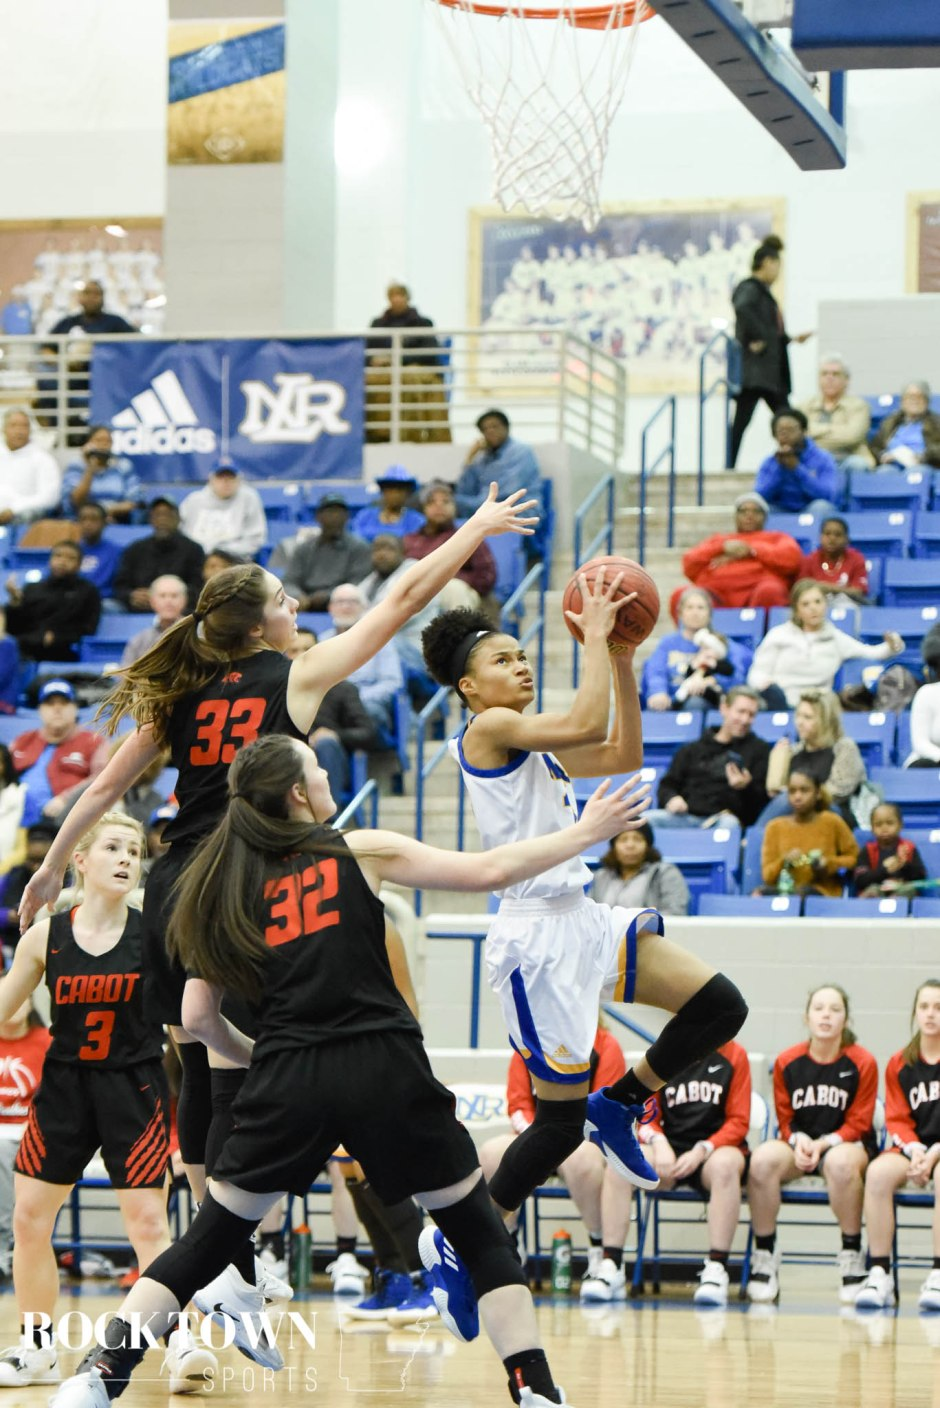 nlr_cabot_basketball_2019_(int)-20